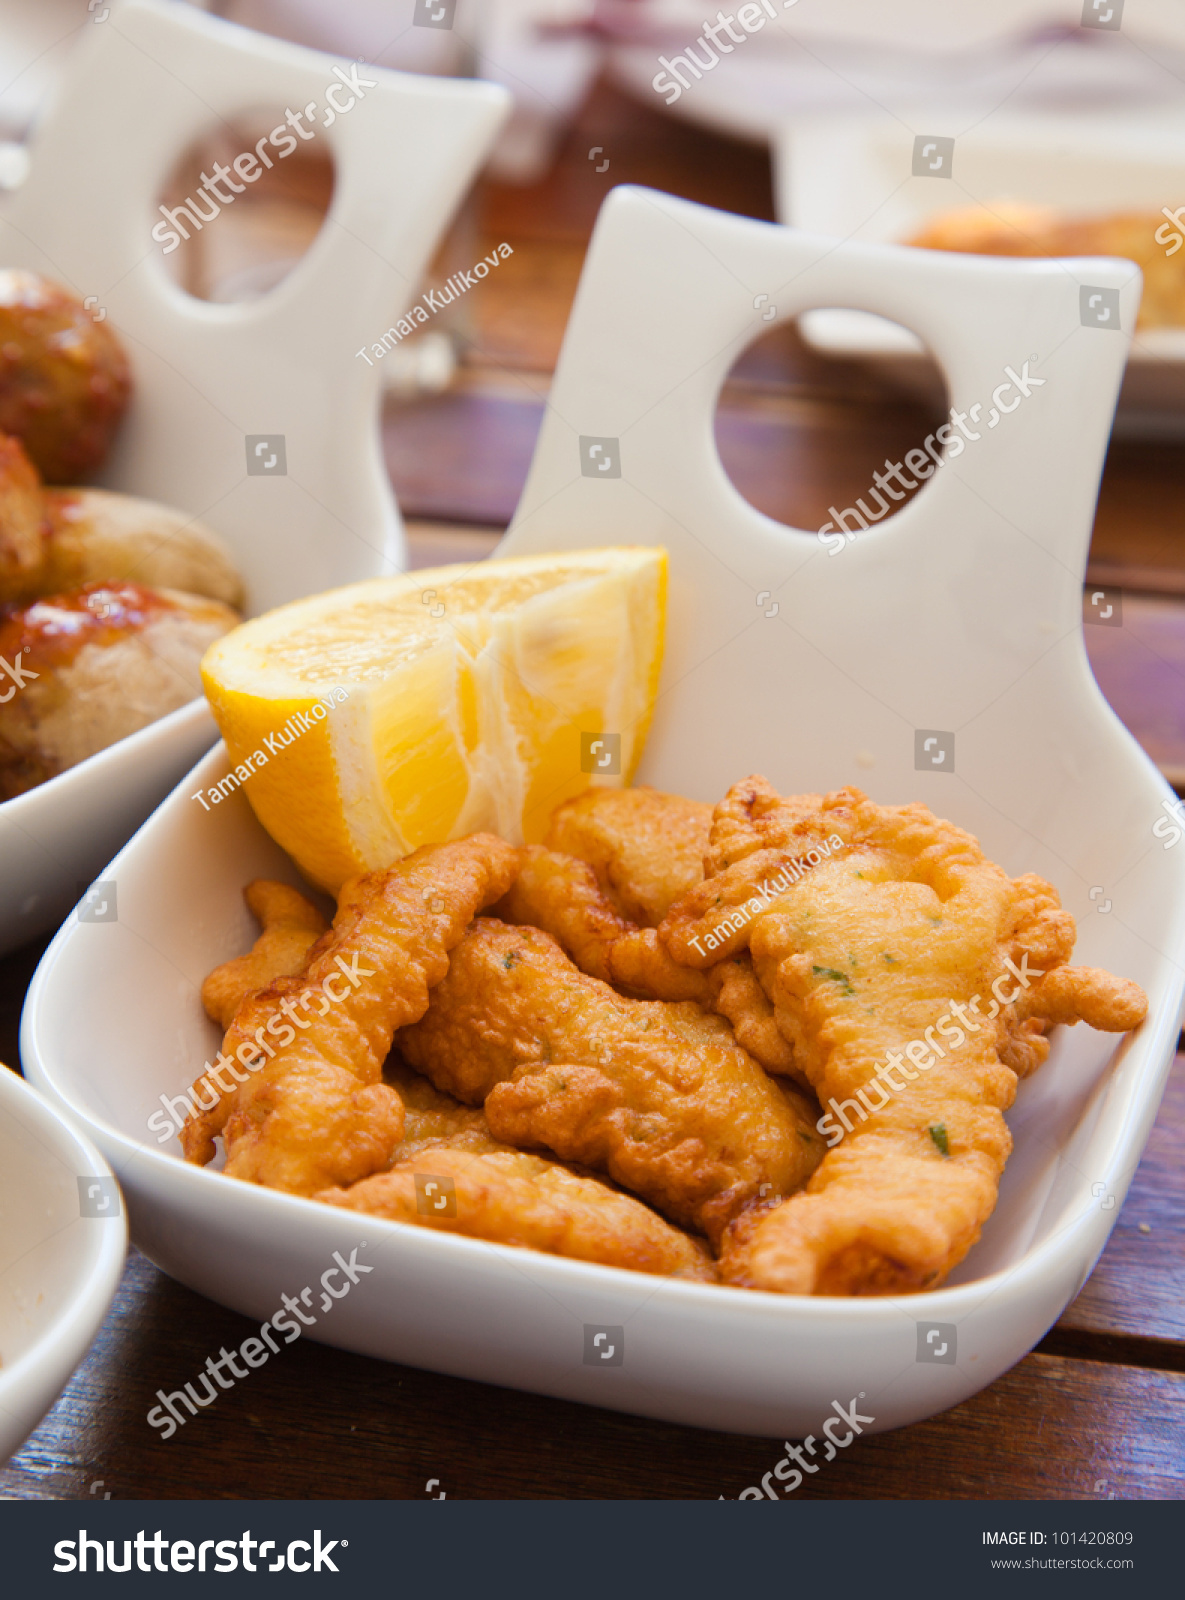 Portion of fried fish in a tapa restaurant stock photo for Fried fish restaurants